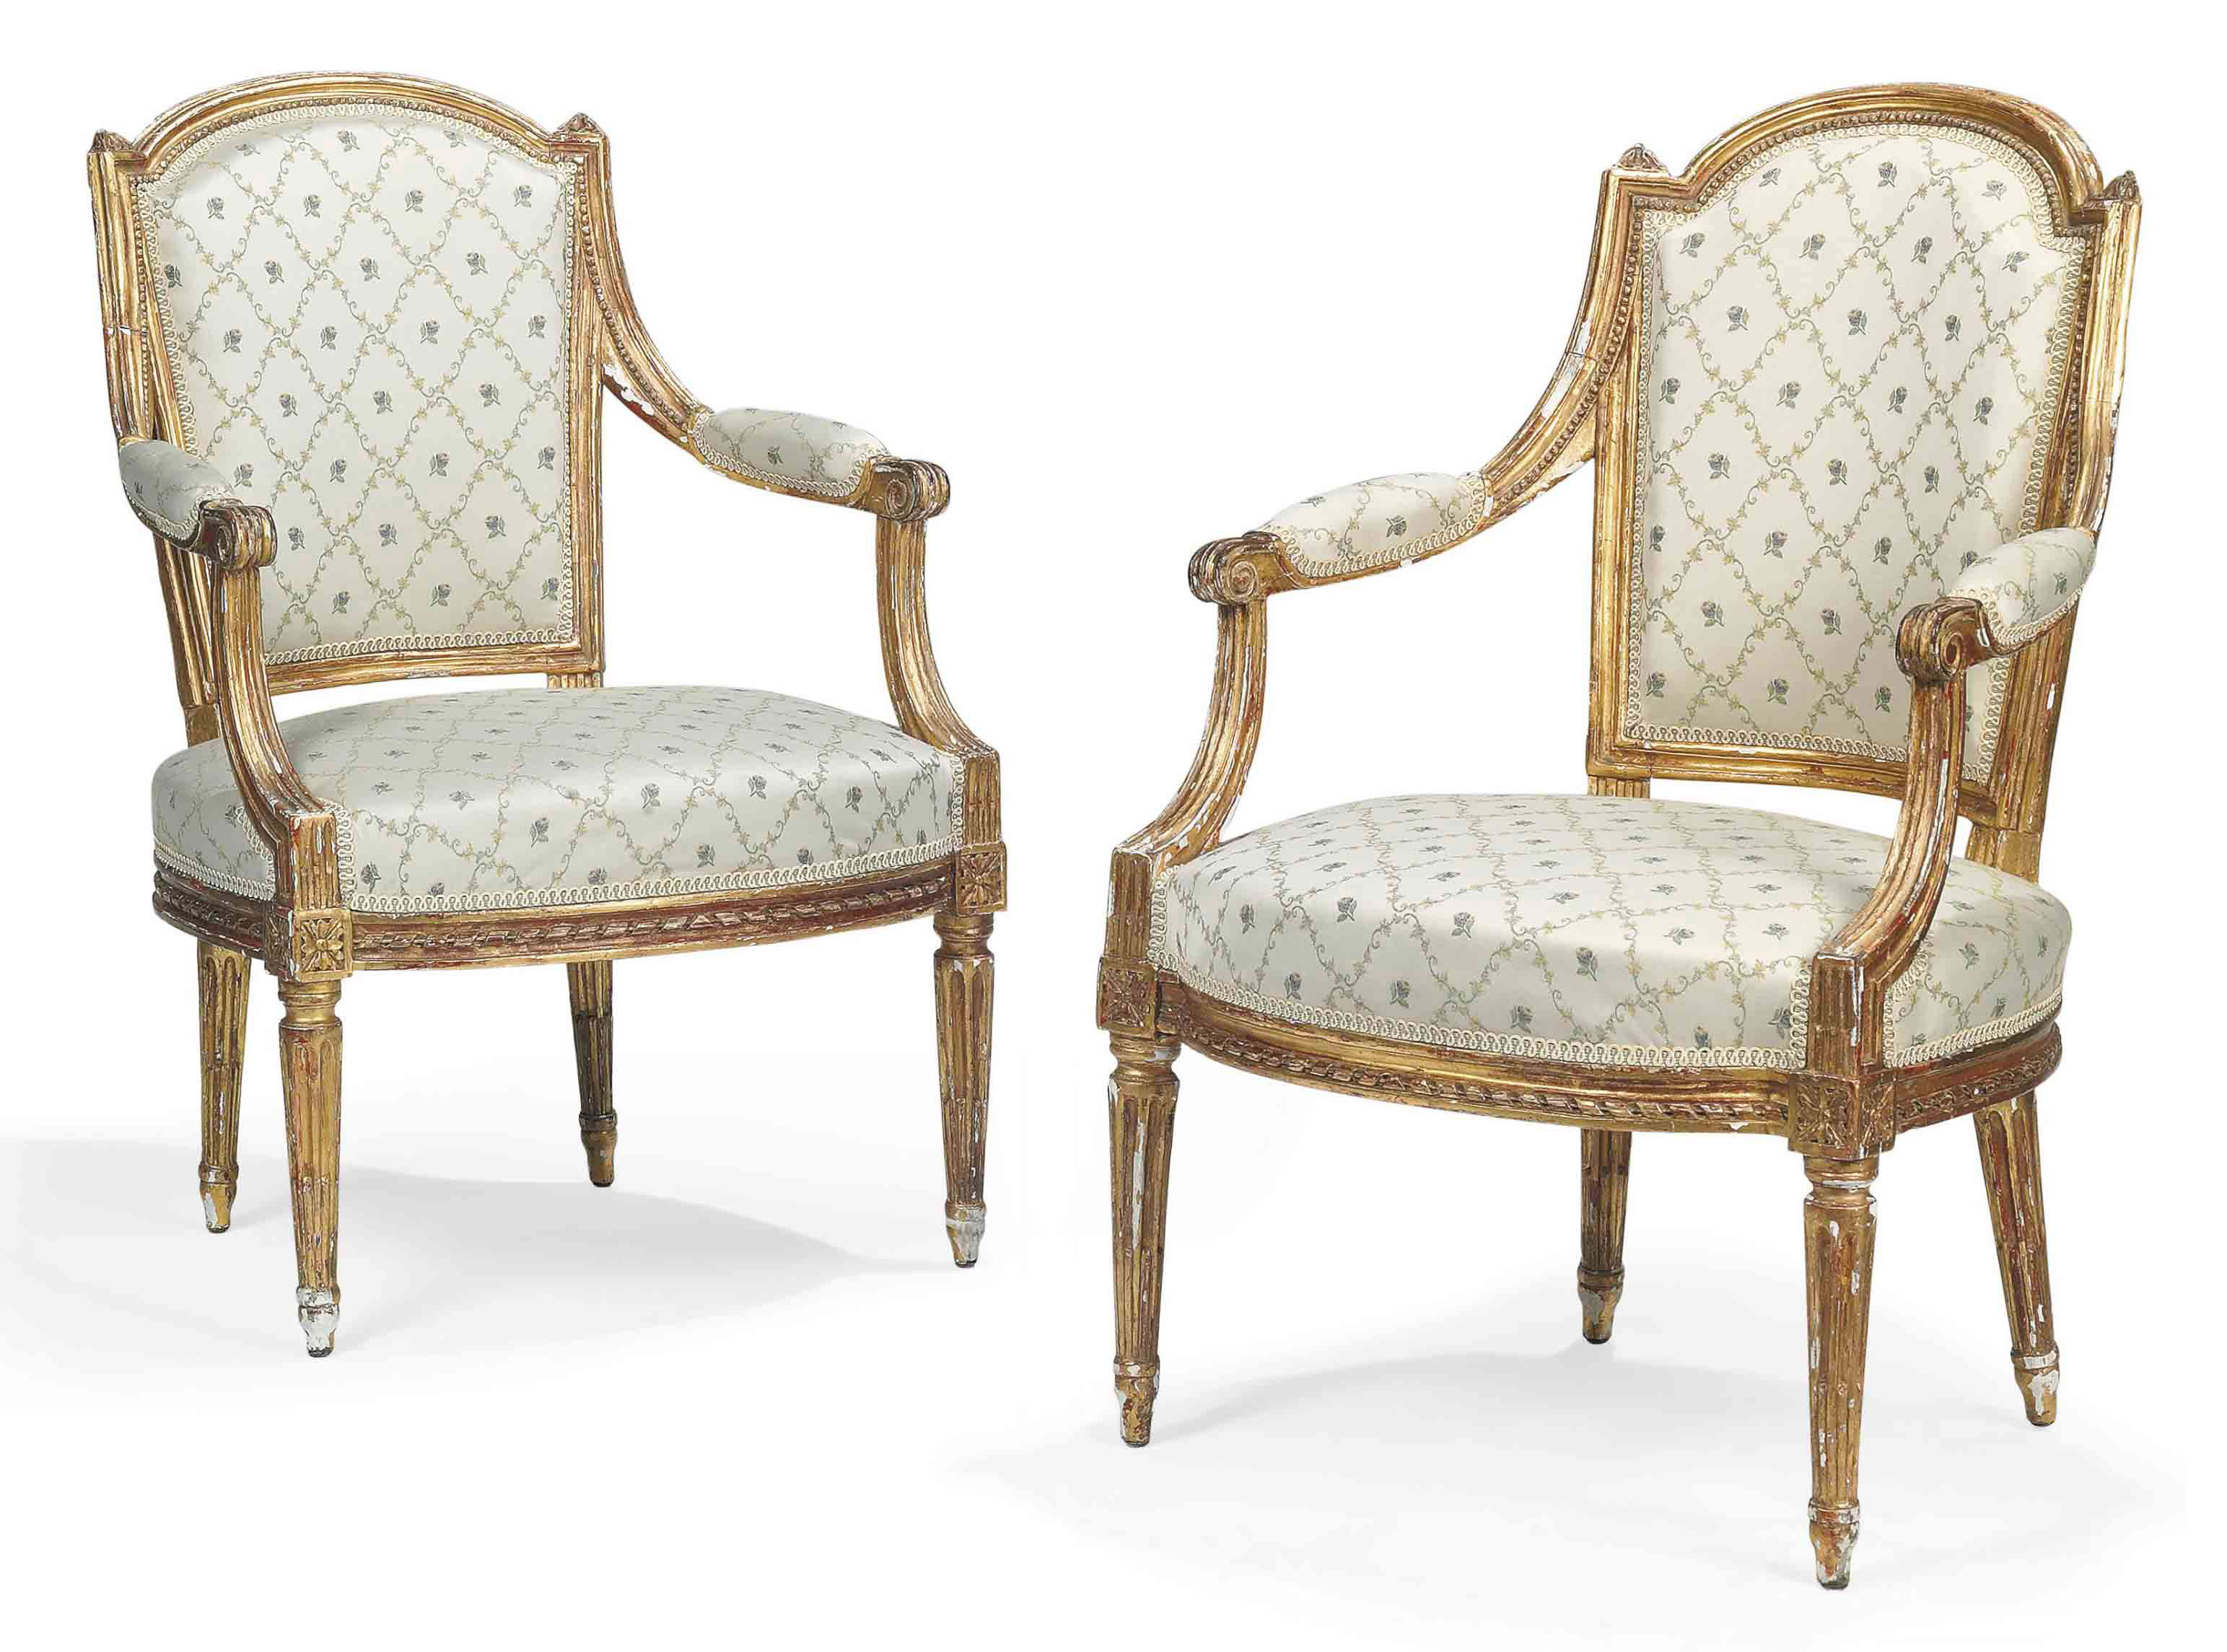 A MATCHED PAIR OF LOUIS XVI GI